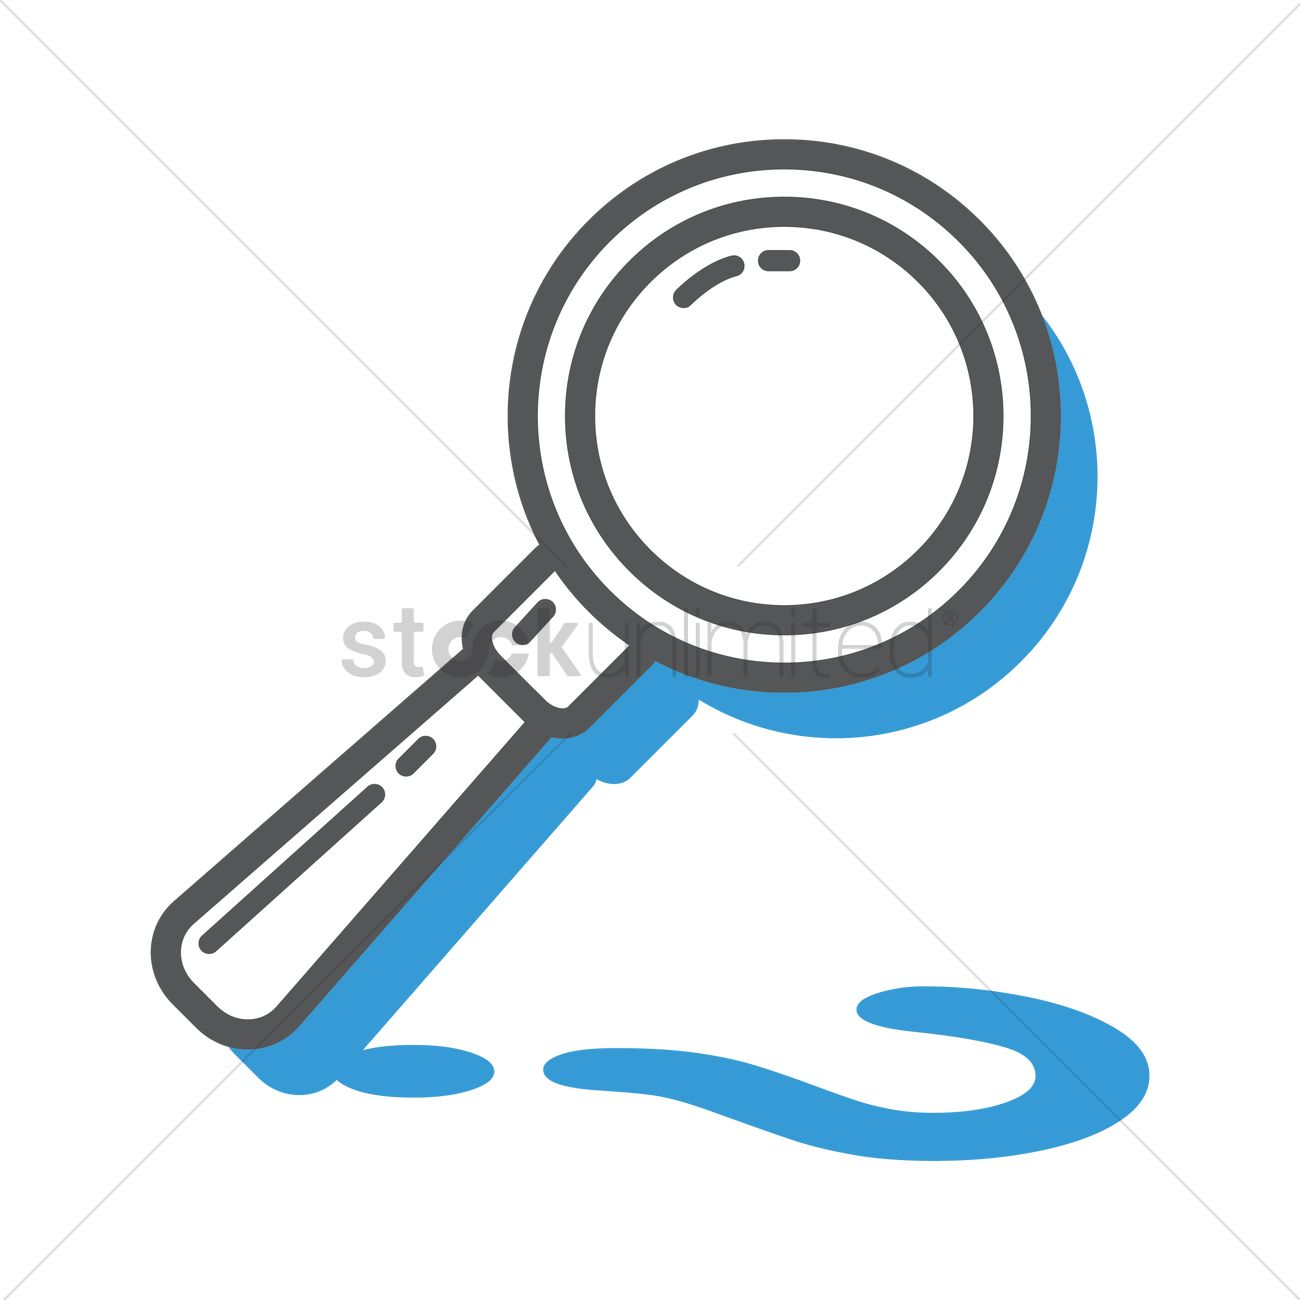 Illustration of magnifying glass icon   free image by rawpixel.com   Magnifying  glass, Magnifier, Illustration